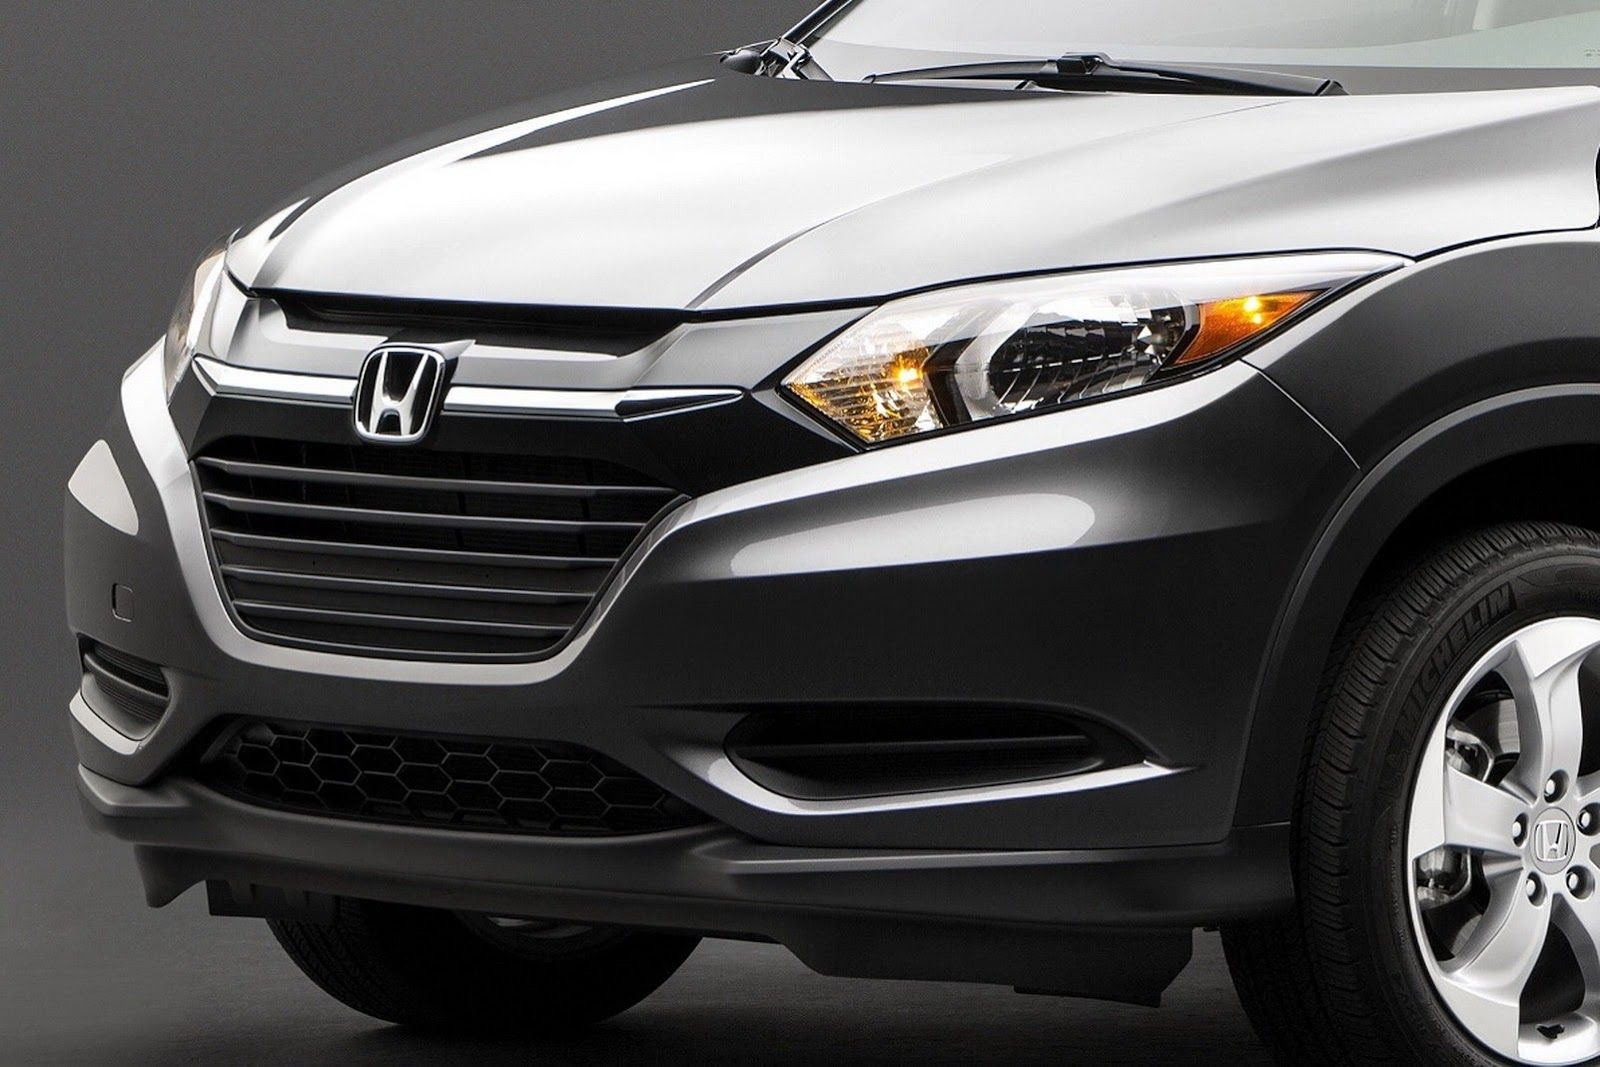 honda hr-v compact suv #2015hondahrv #car #autos #review #honda